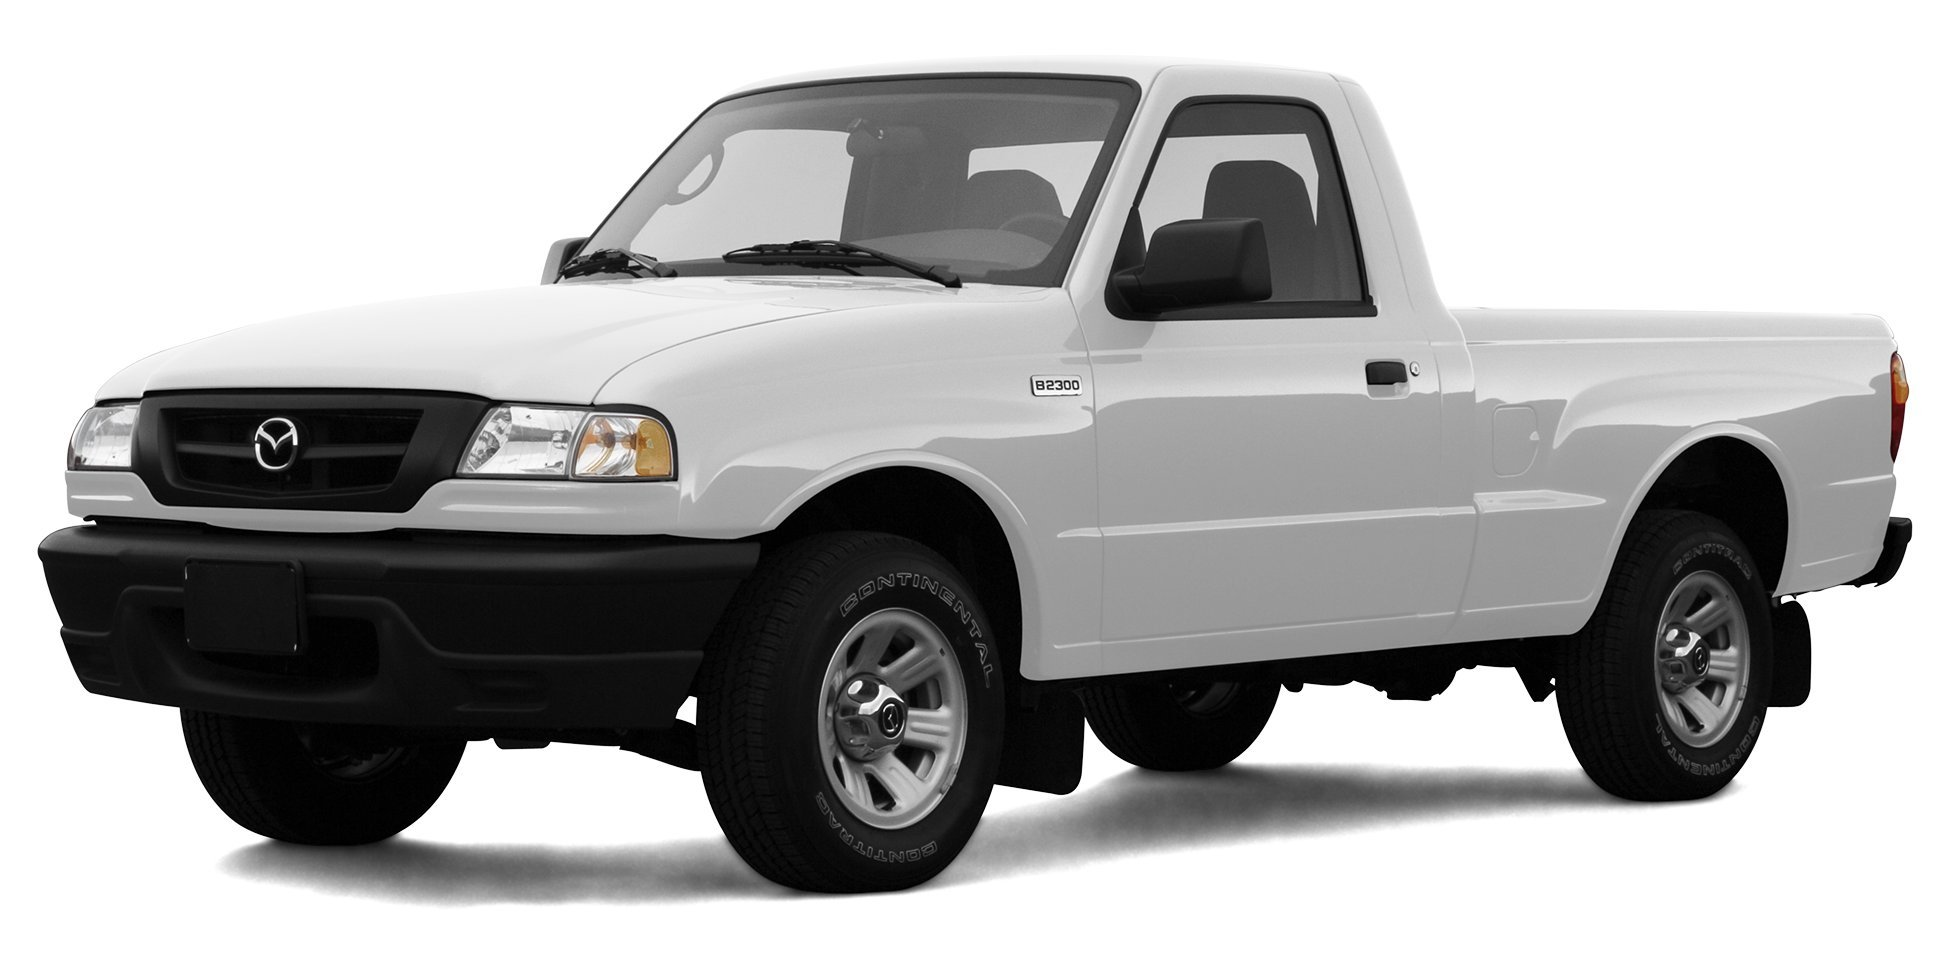 2007 Mazda B2300, Regular Cab 4-Cylinder Automatic Transmission ...